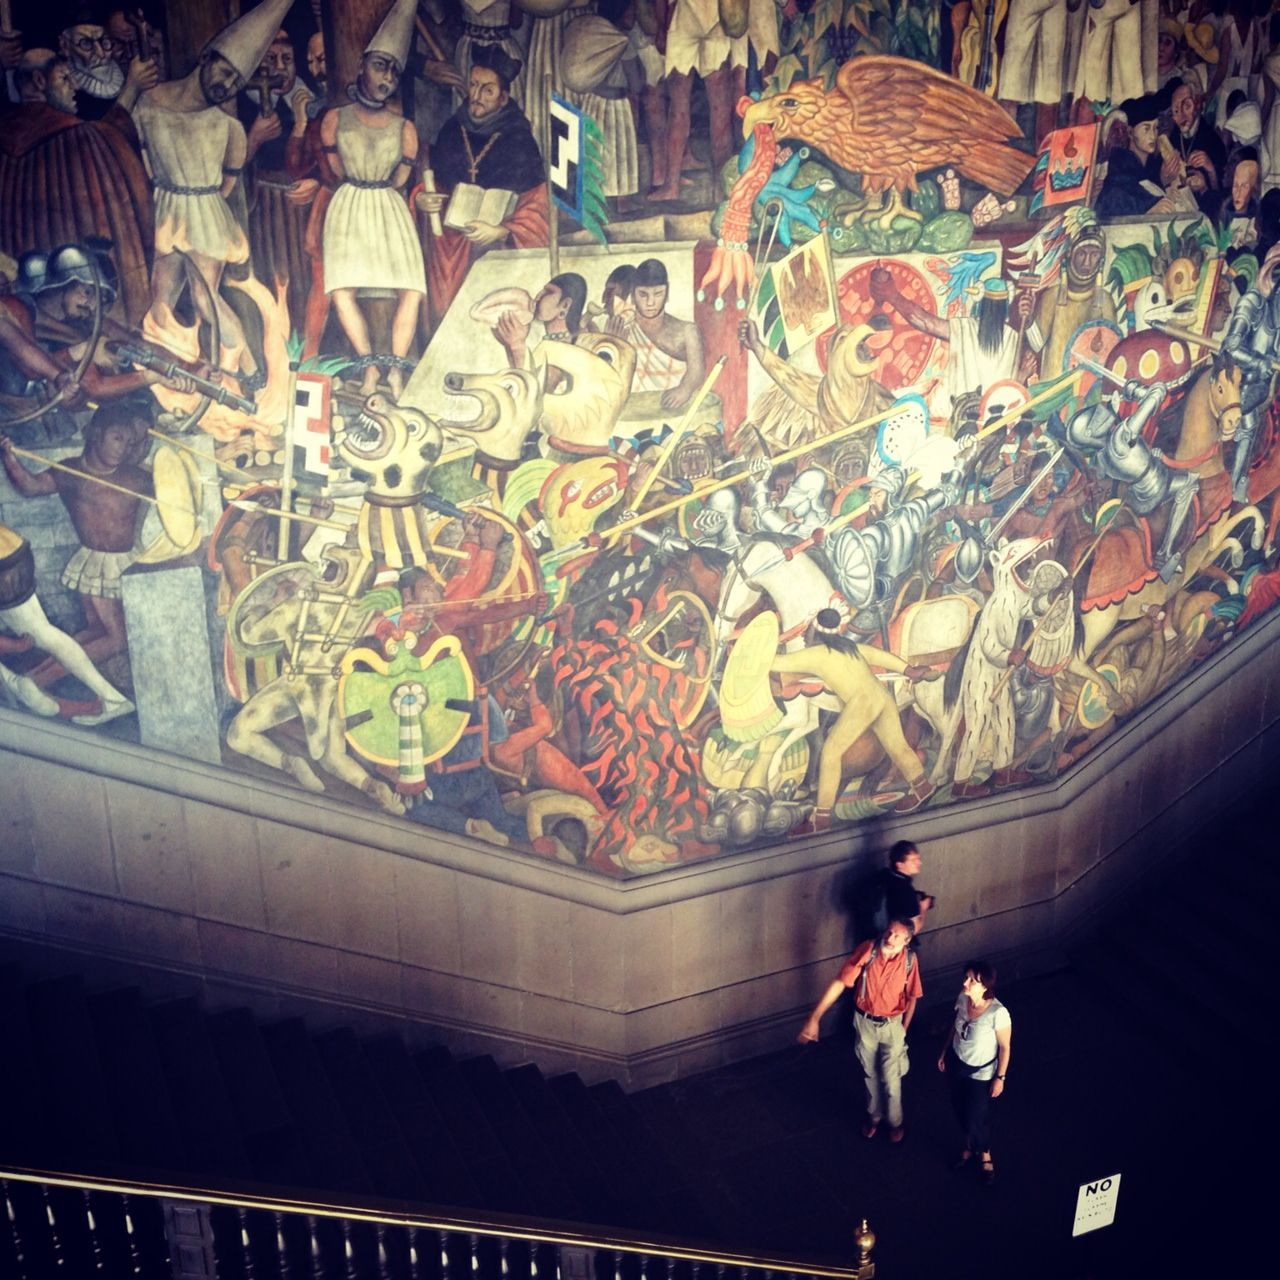 Diego rivera s famous epic of the mexican people mural for Diego rivera s most famous mural